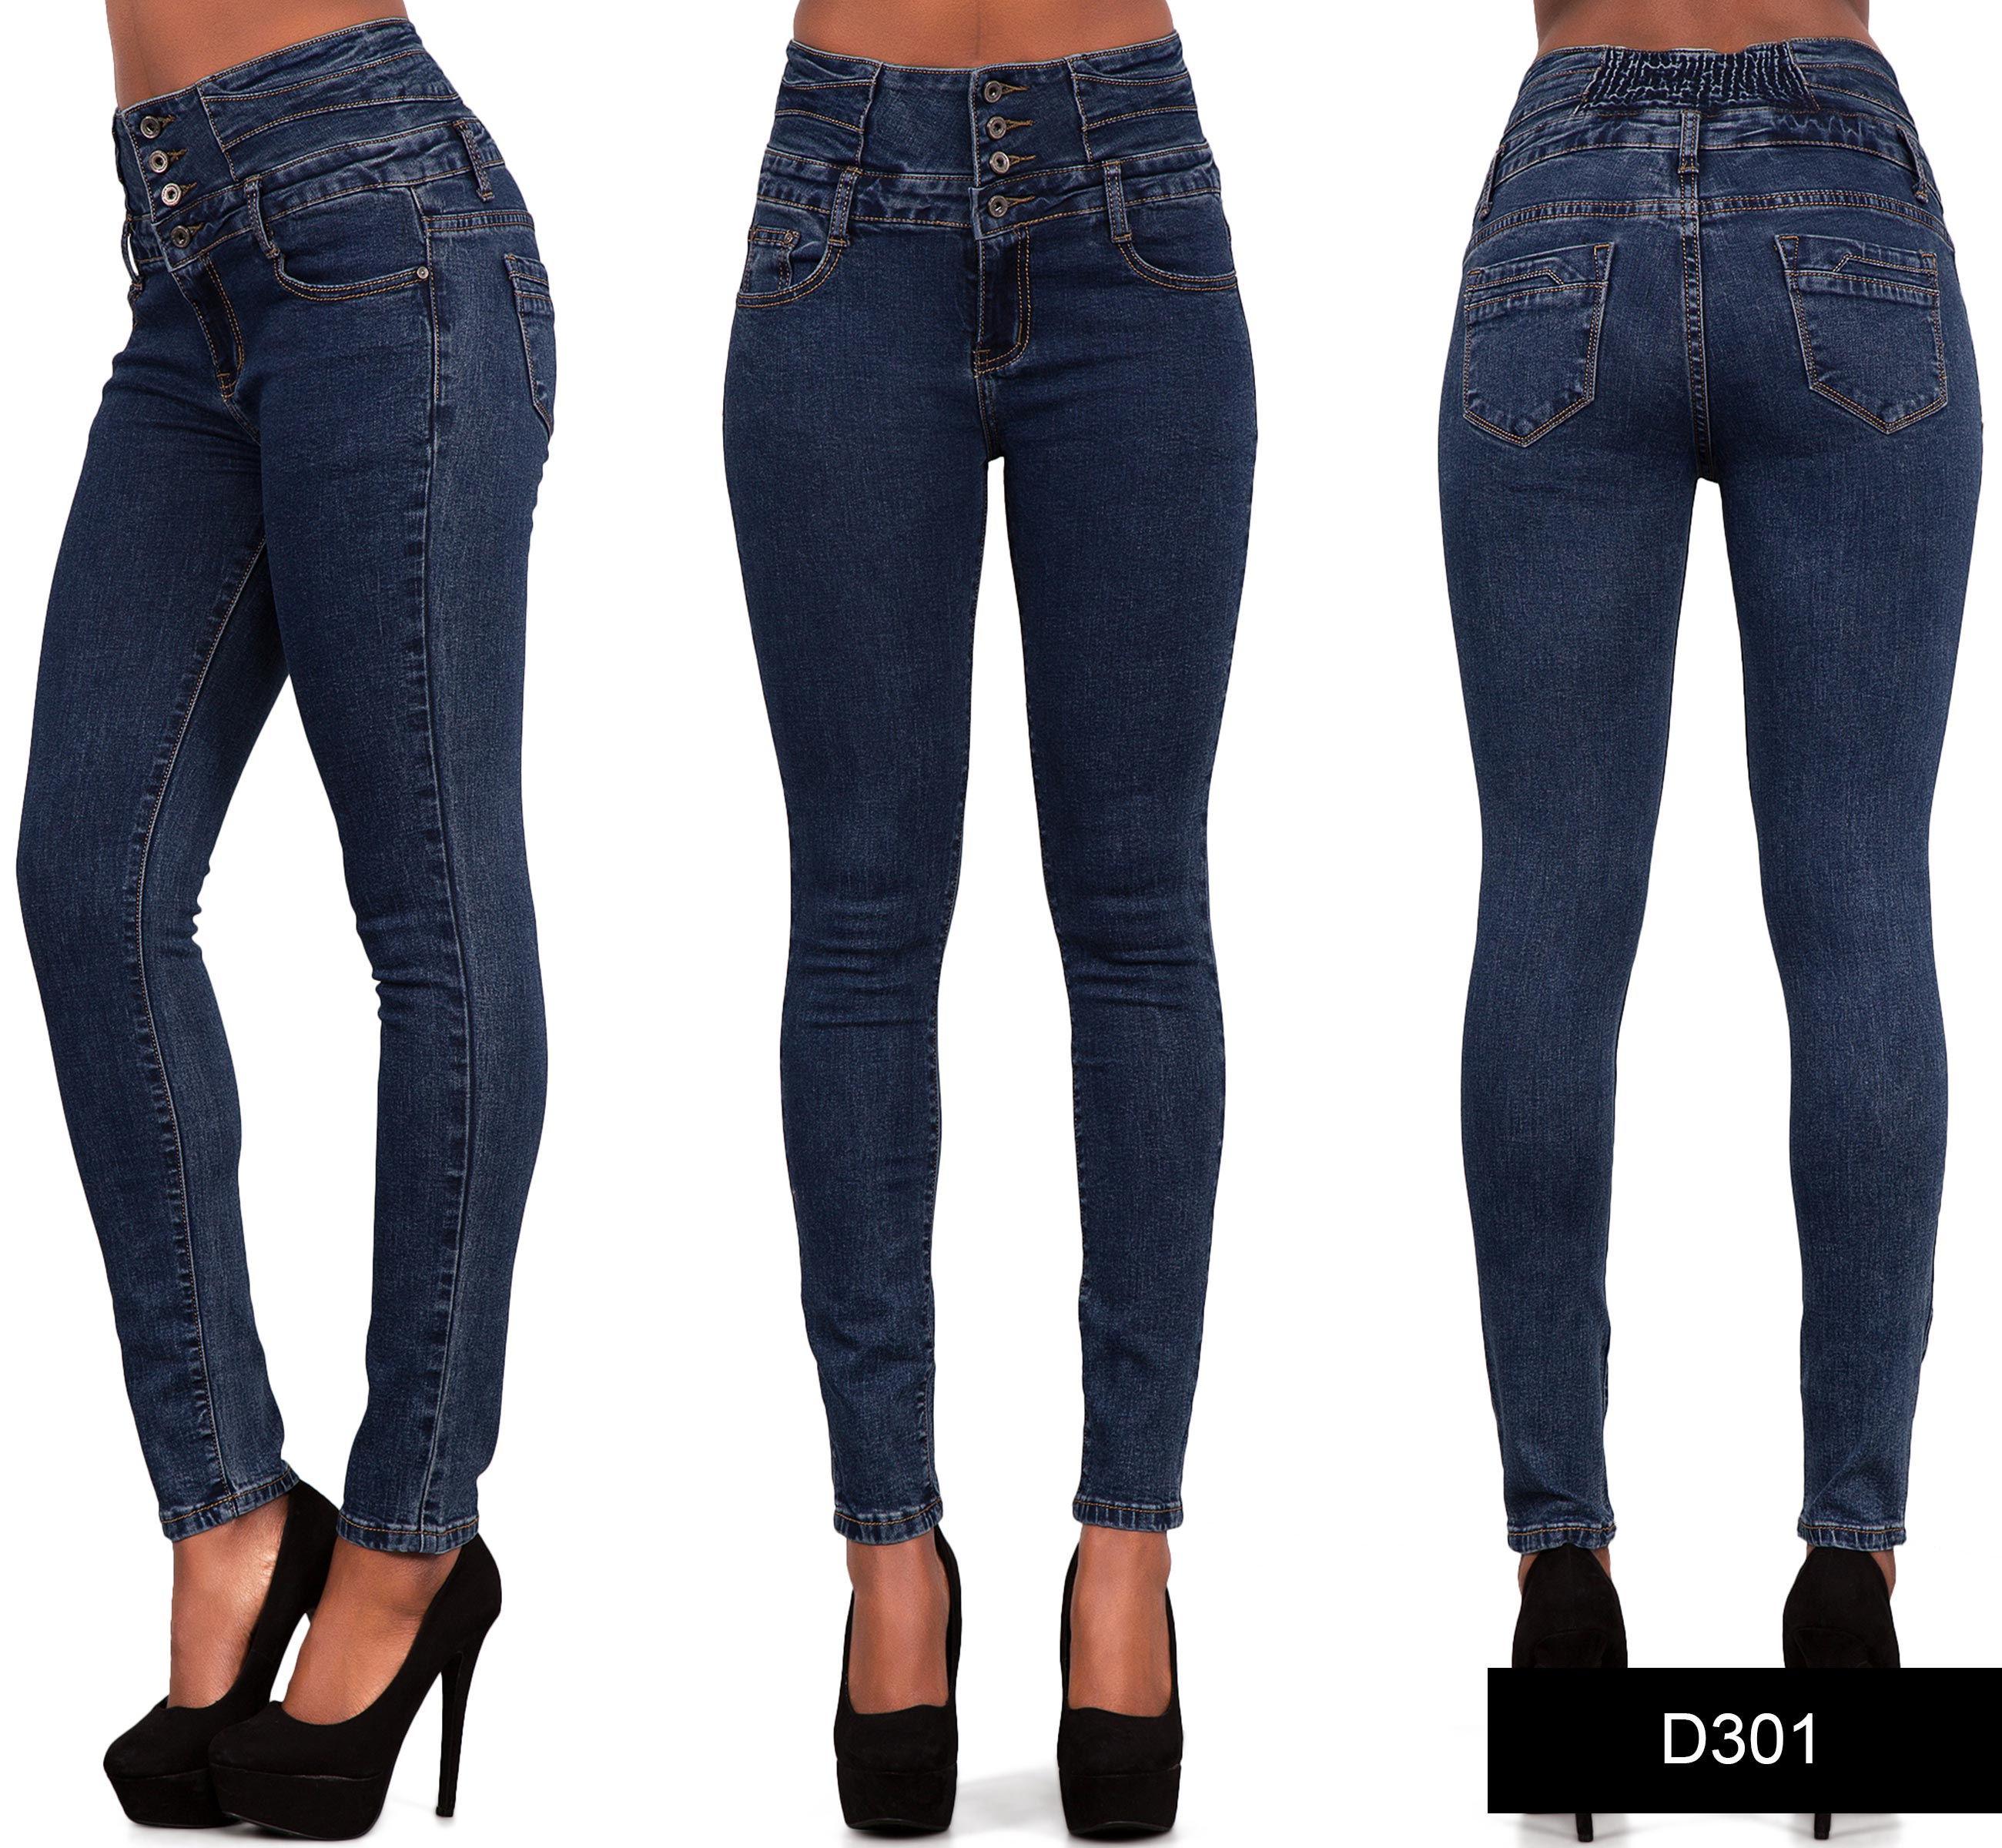 Shop womens stretch skinny jeans at Neiman Marcus, where you will find free shipping on the latest in fashion from top designers.